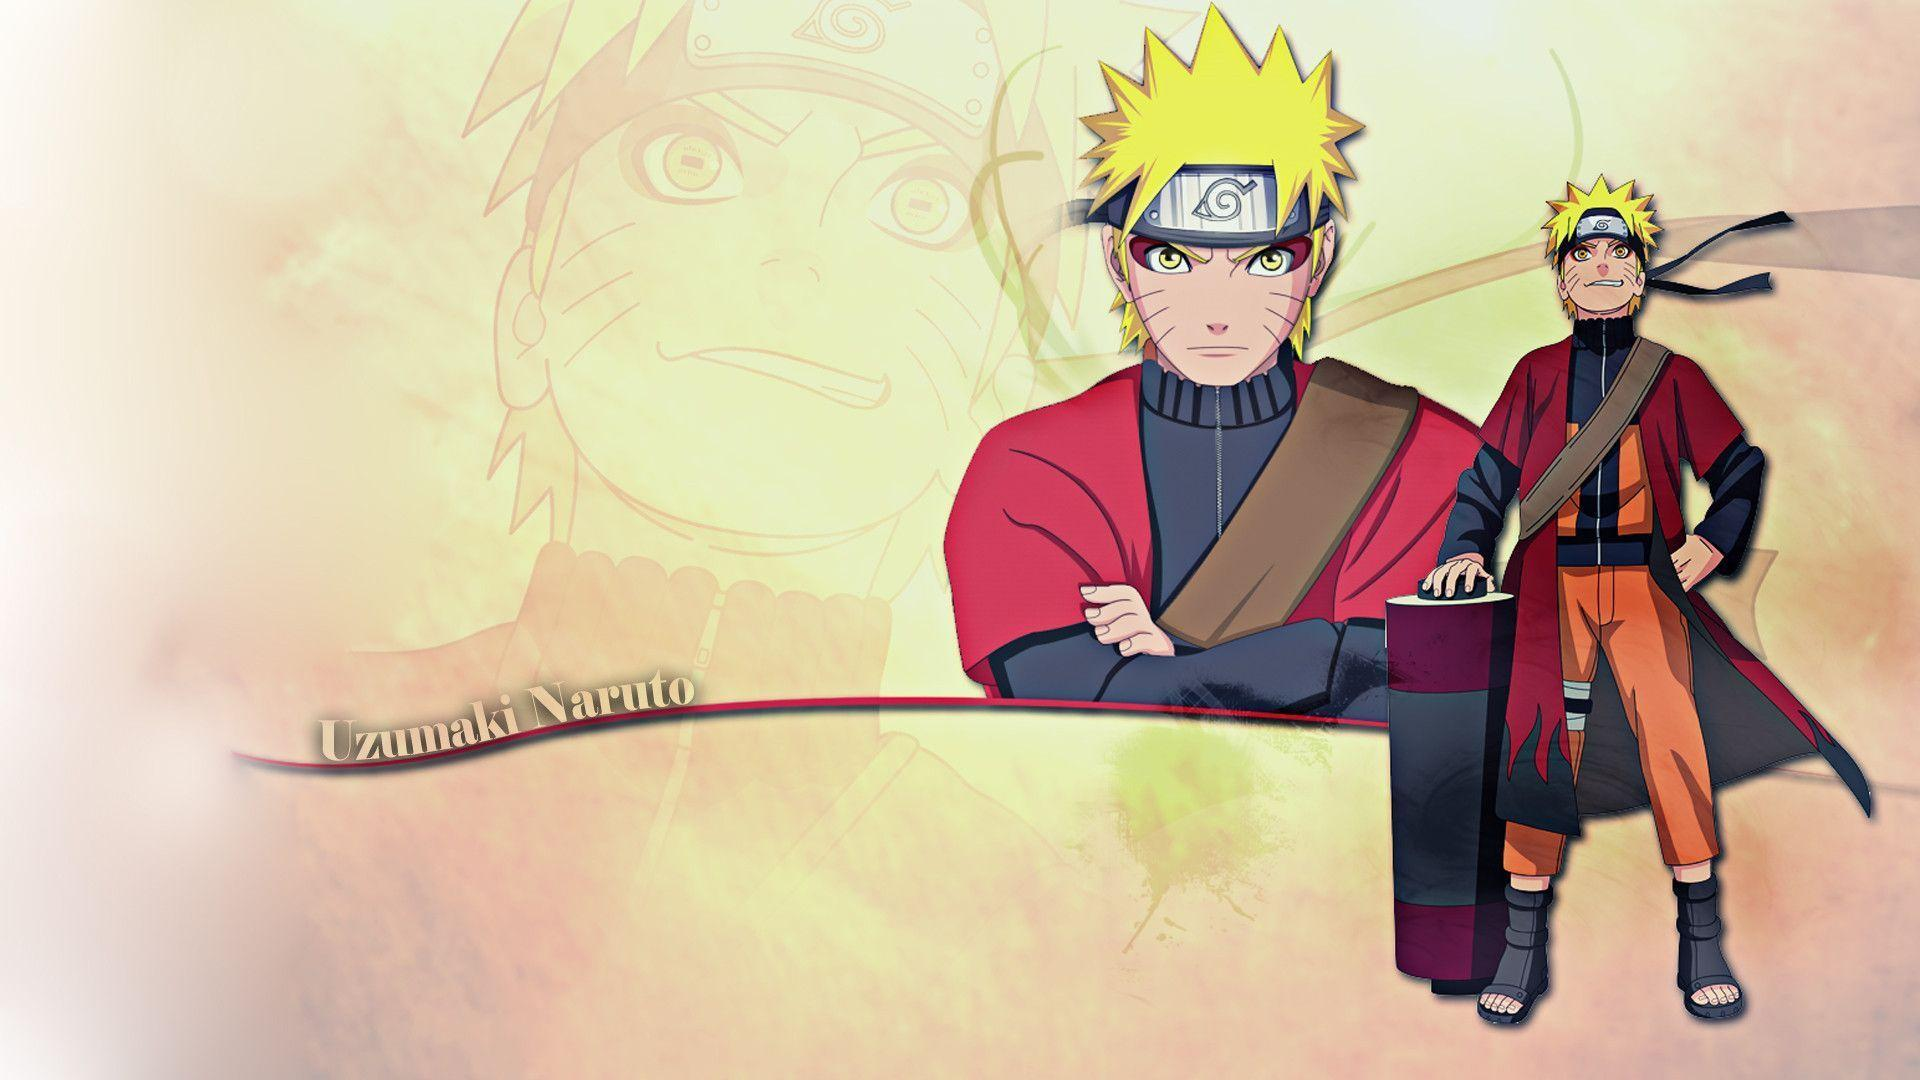 Wallpapers For > Naruto Wallpapers 1920x1080